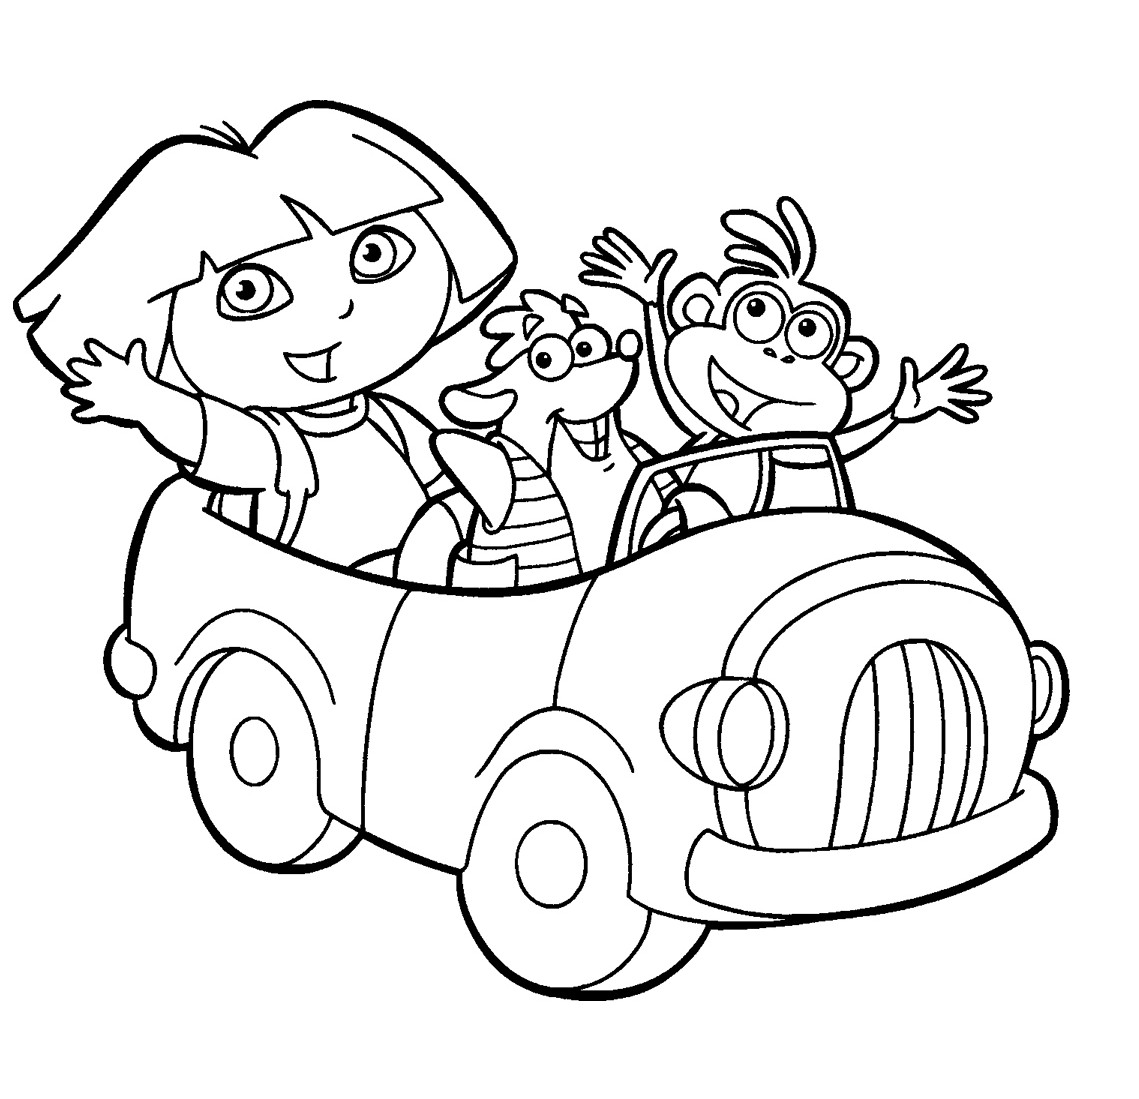 dora drawing pictures 15 best new dora the explorer easy drawing art gallery dora drawing pictures